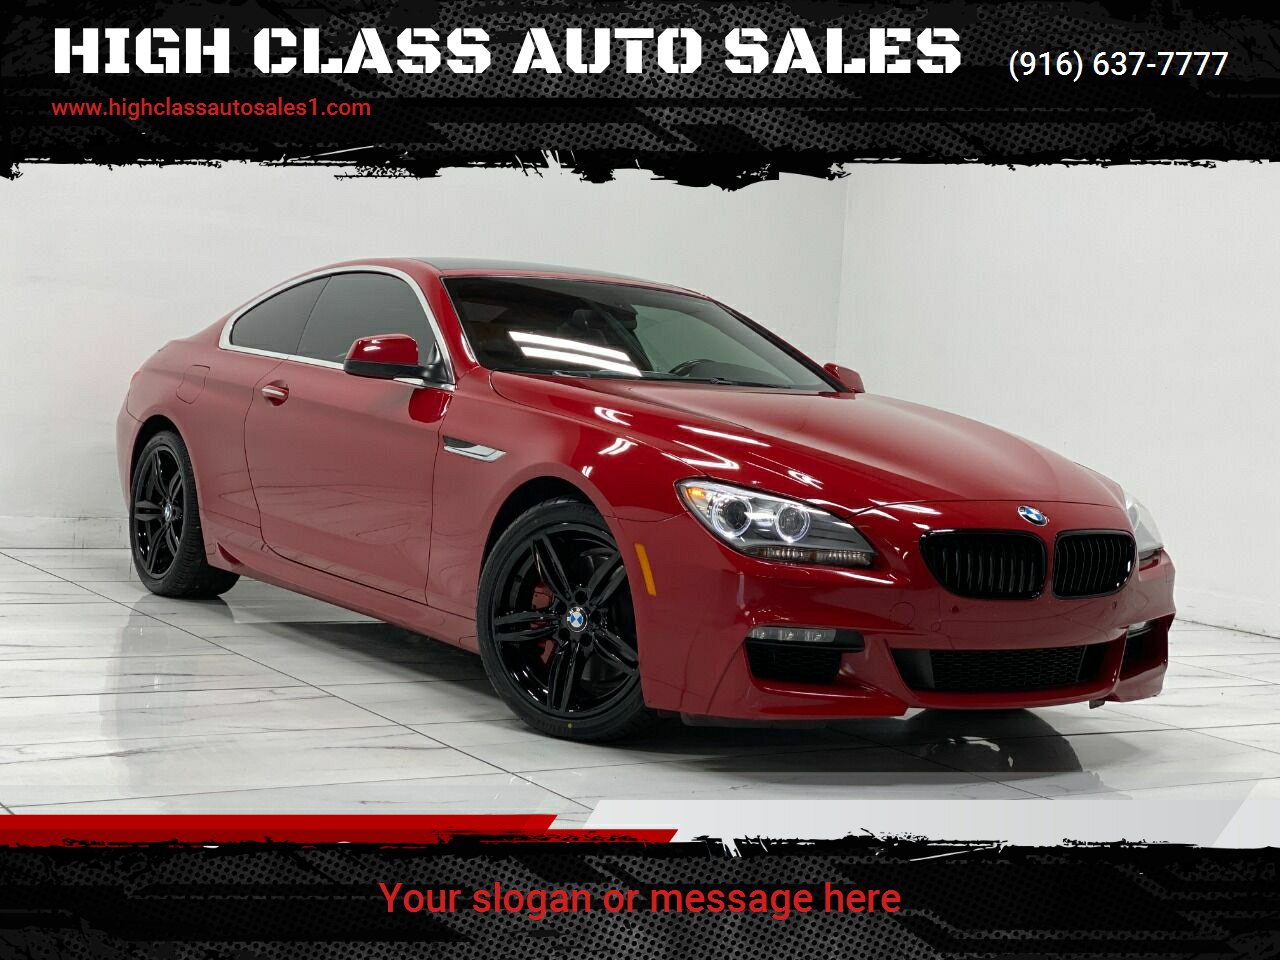 Used Bmw 6 Series For Sale In Sacramento Ca Carsforsale Com